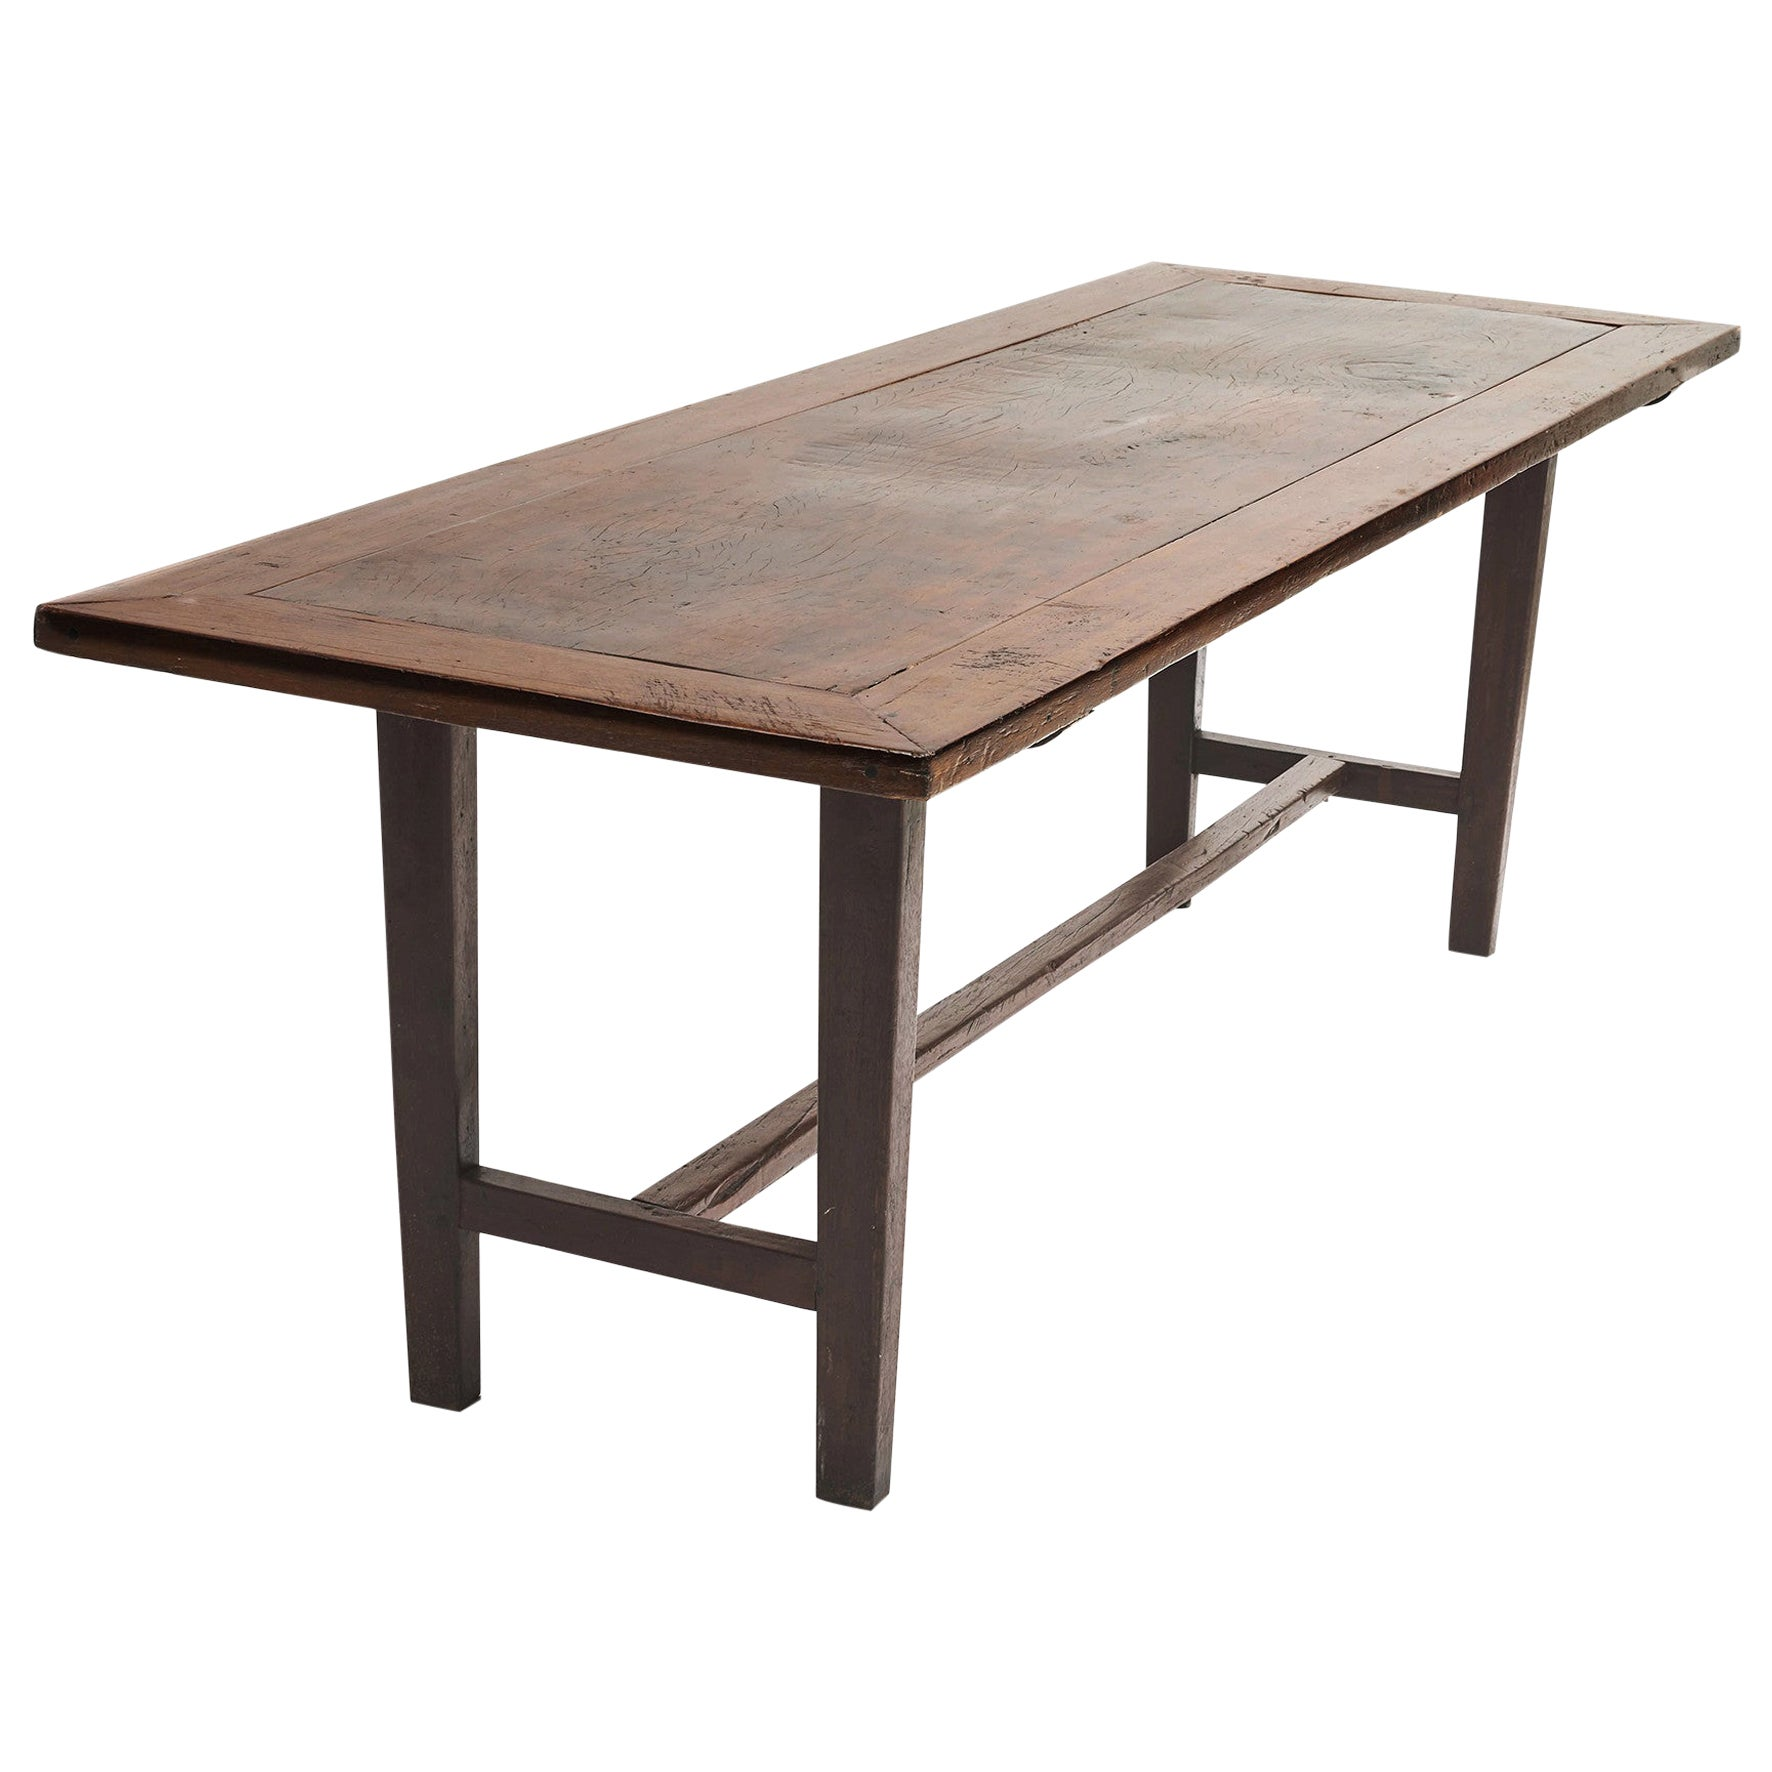 Spanish Colonial Long Table with H-Form Stretcher